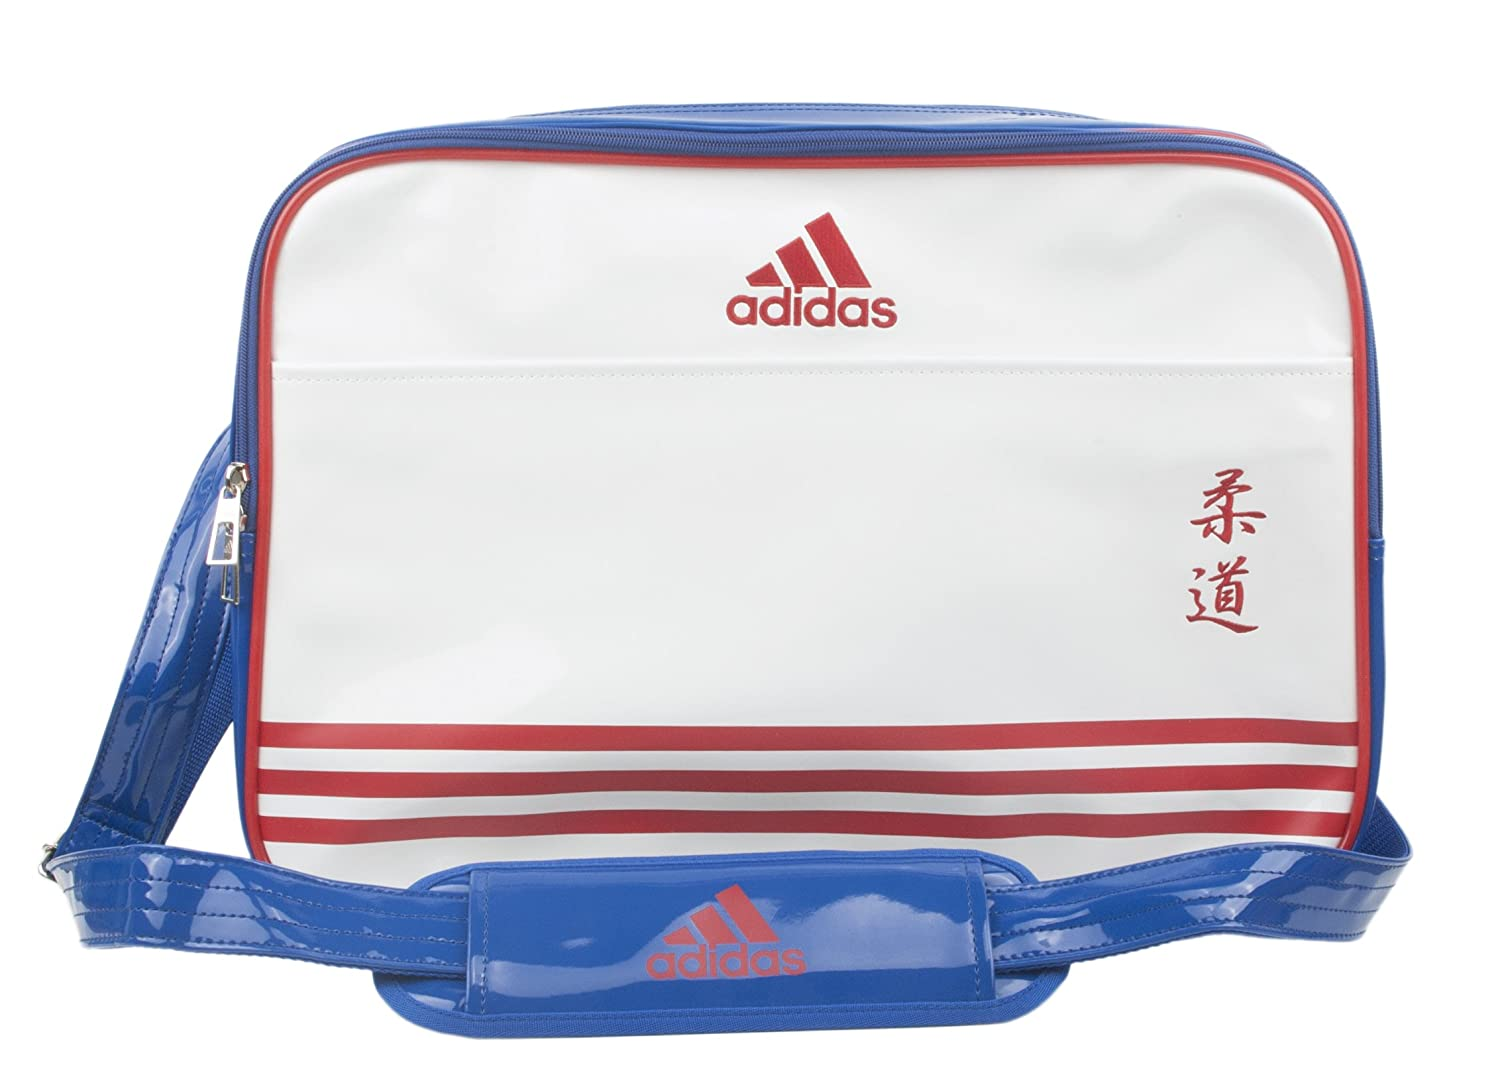 d0b8c2513c Adidas XL Retro Messenger Bag Cross Body Bag Sports